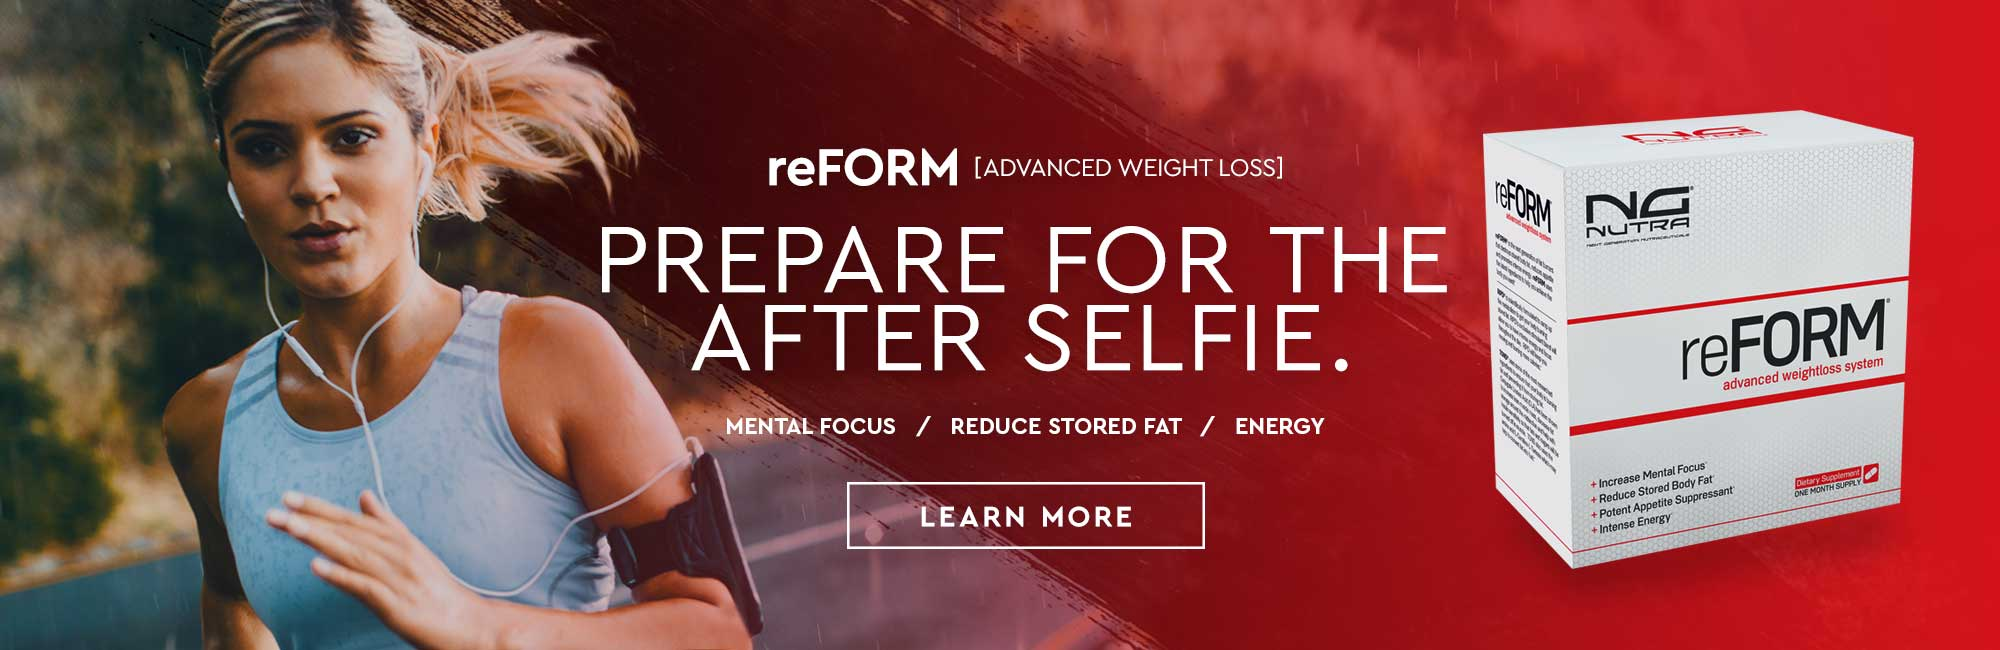 reFORM [Advanced Weight Loss] Prepare For The After Selfie.